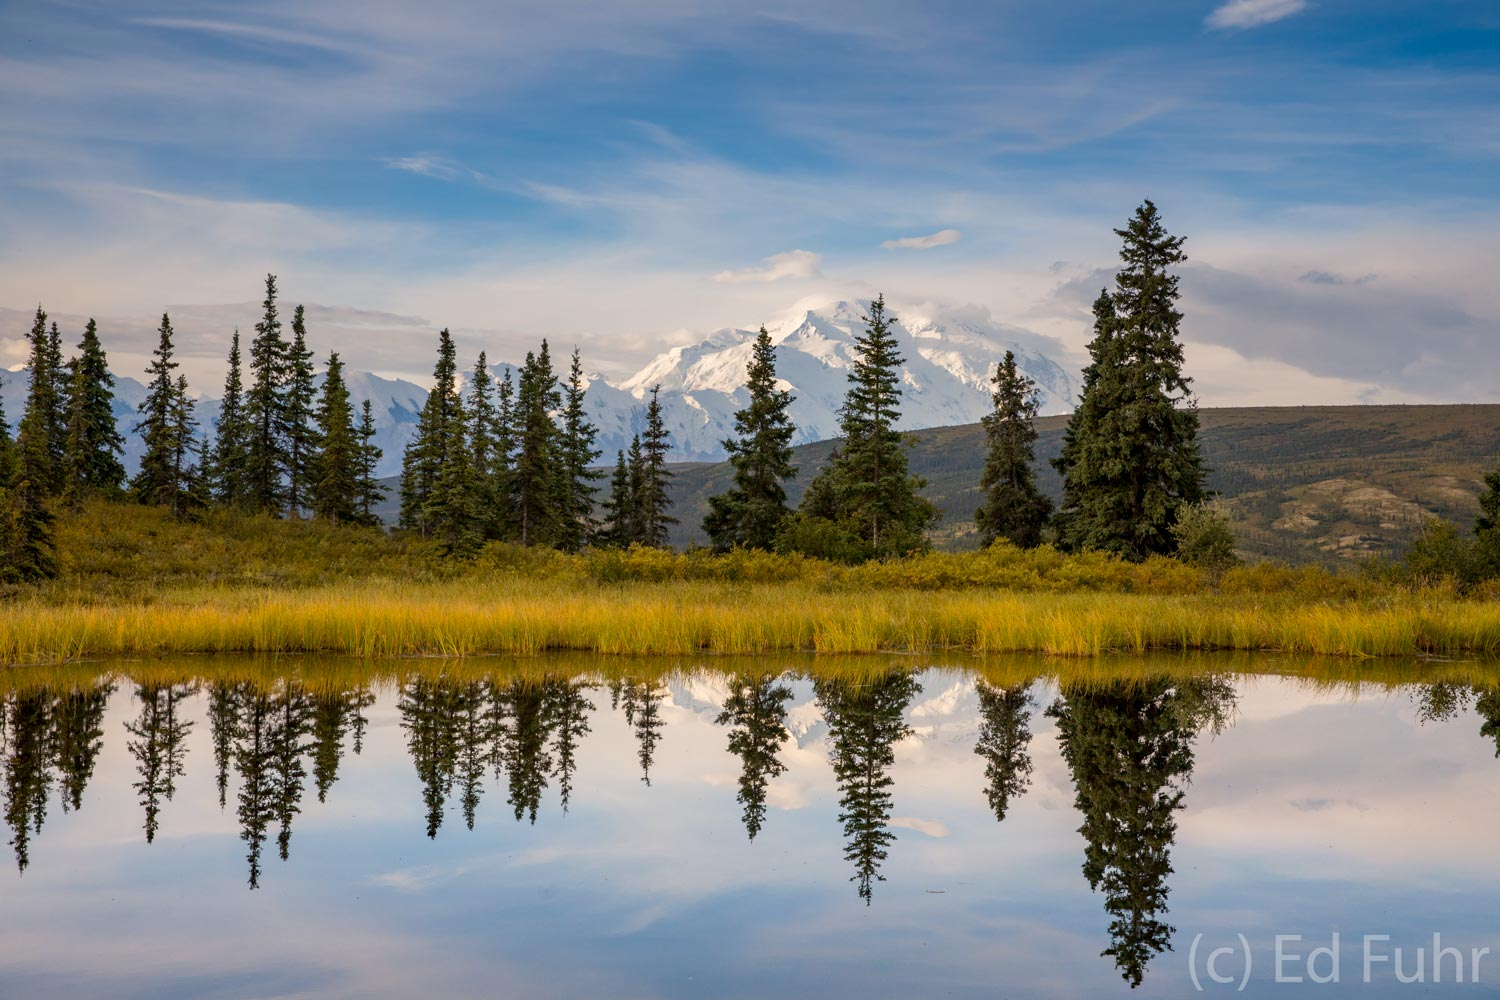 Mount Denali rises in the morning distance, reflecting in the still waters of Nugget Pond.